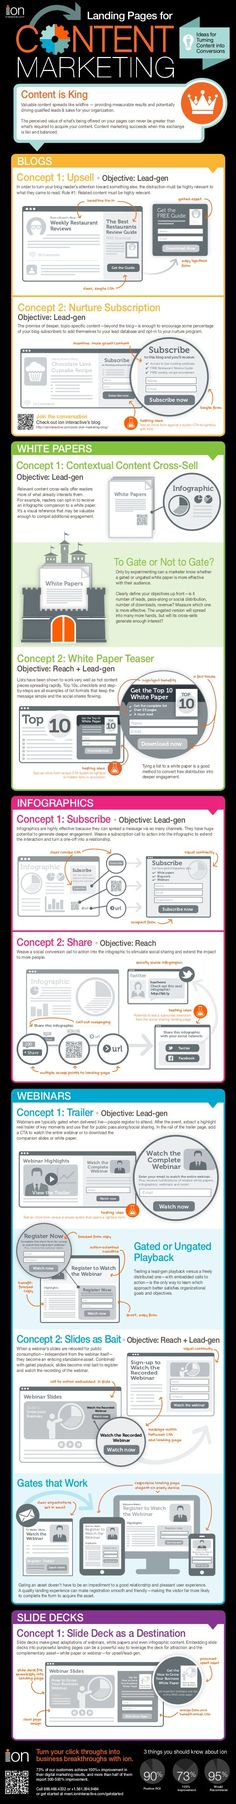 Landing Pages for #Content #Marketing. Ideas for turning content into conversation. #Infographic